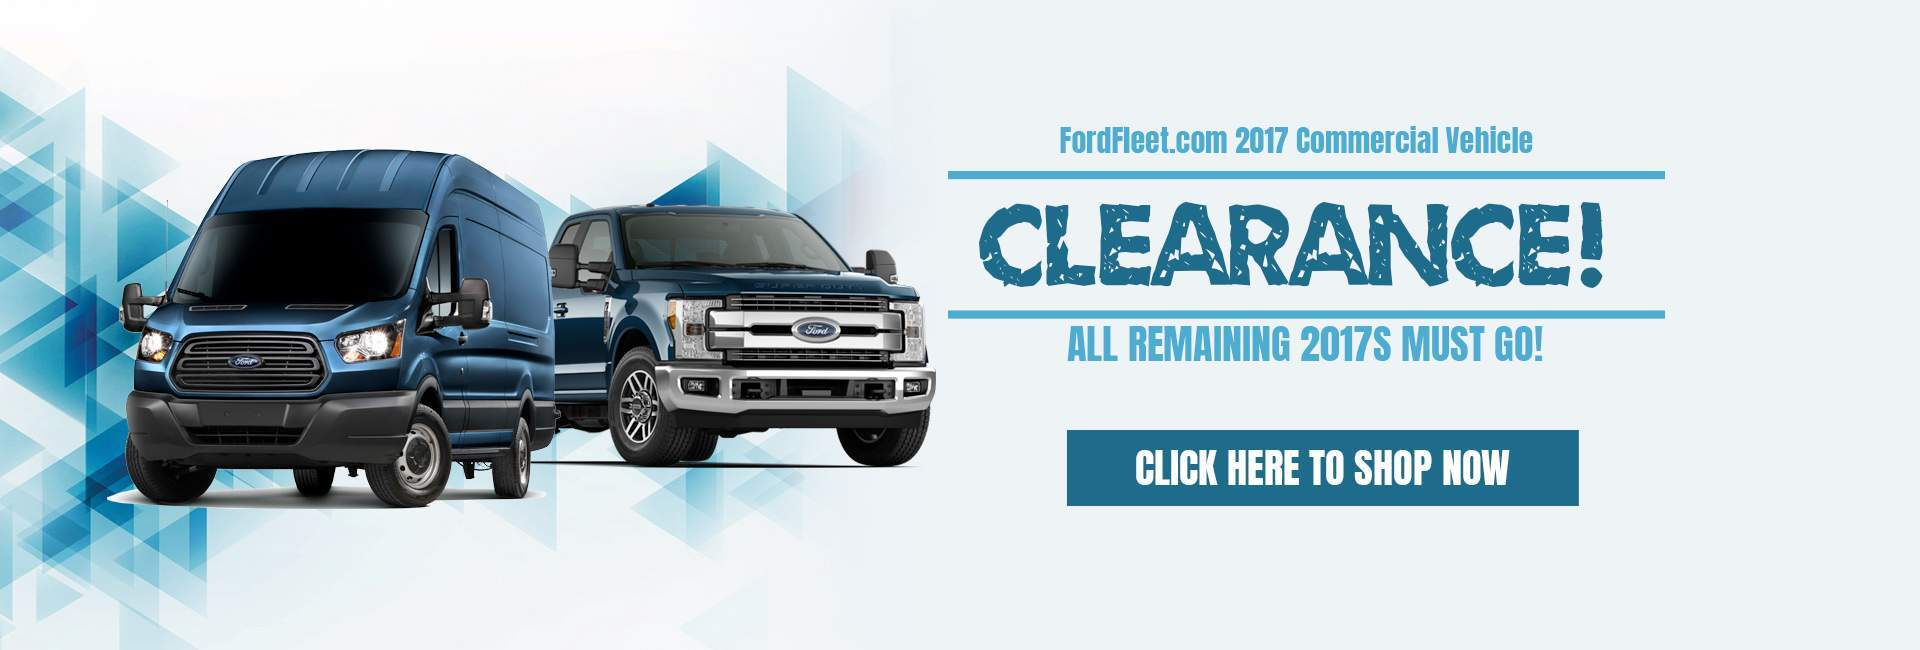 2017 Commercial Vehicle Clearance